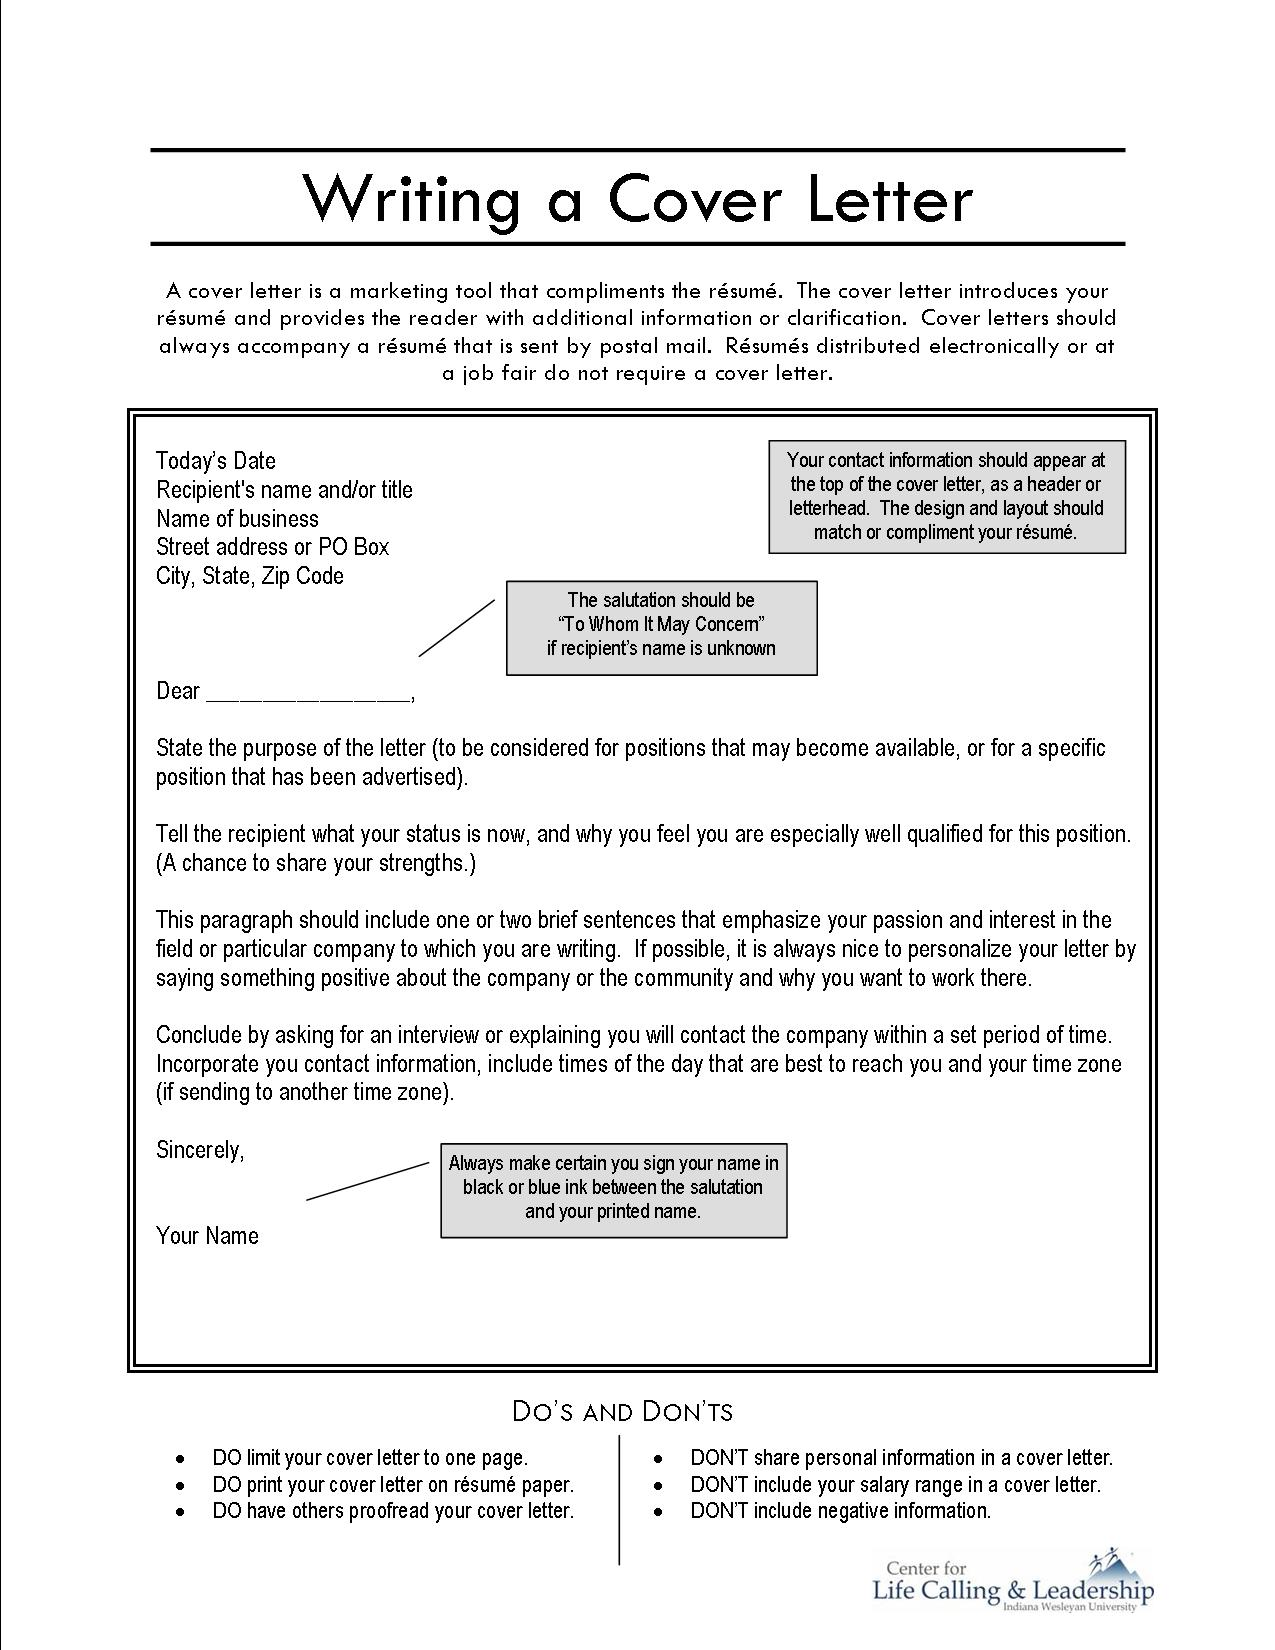 Composing A Cover Letter pictures of blank birth certificates – Writing Cover Letters